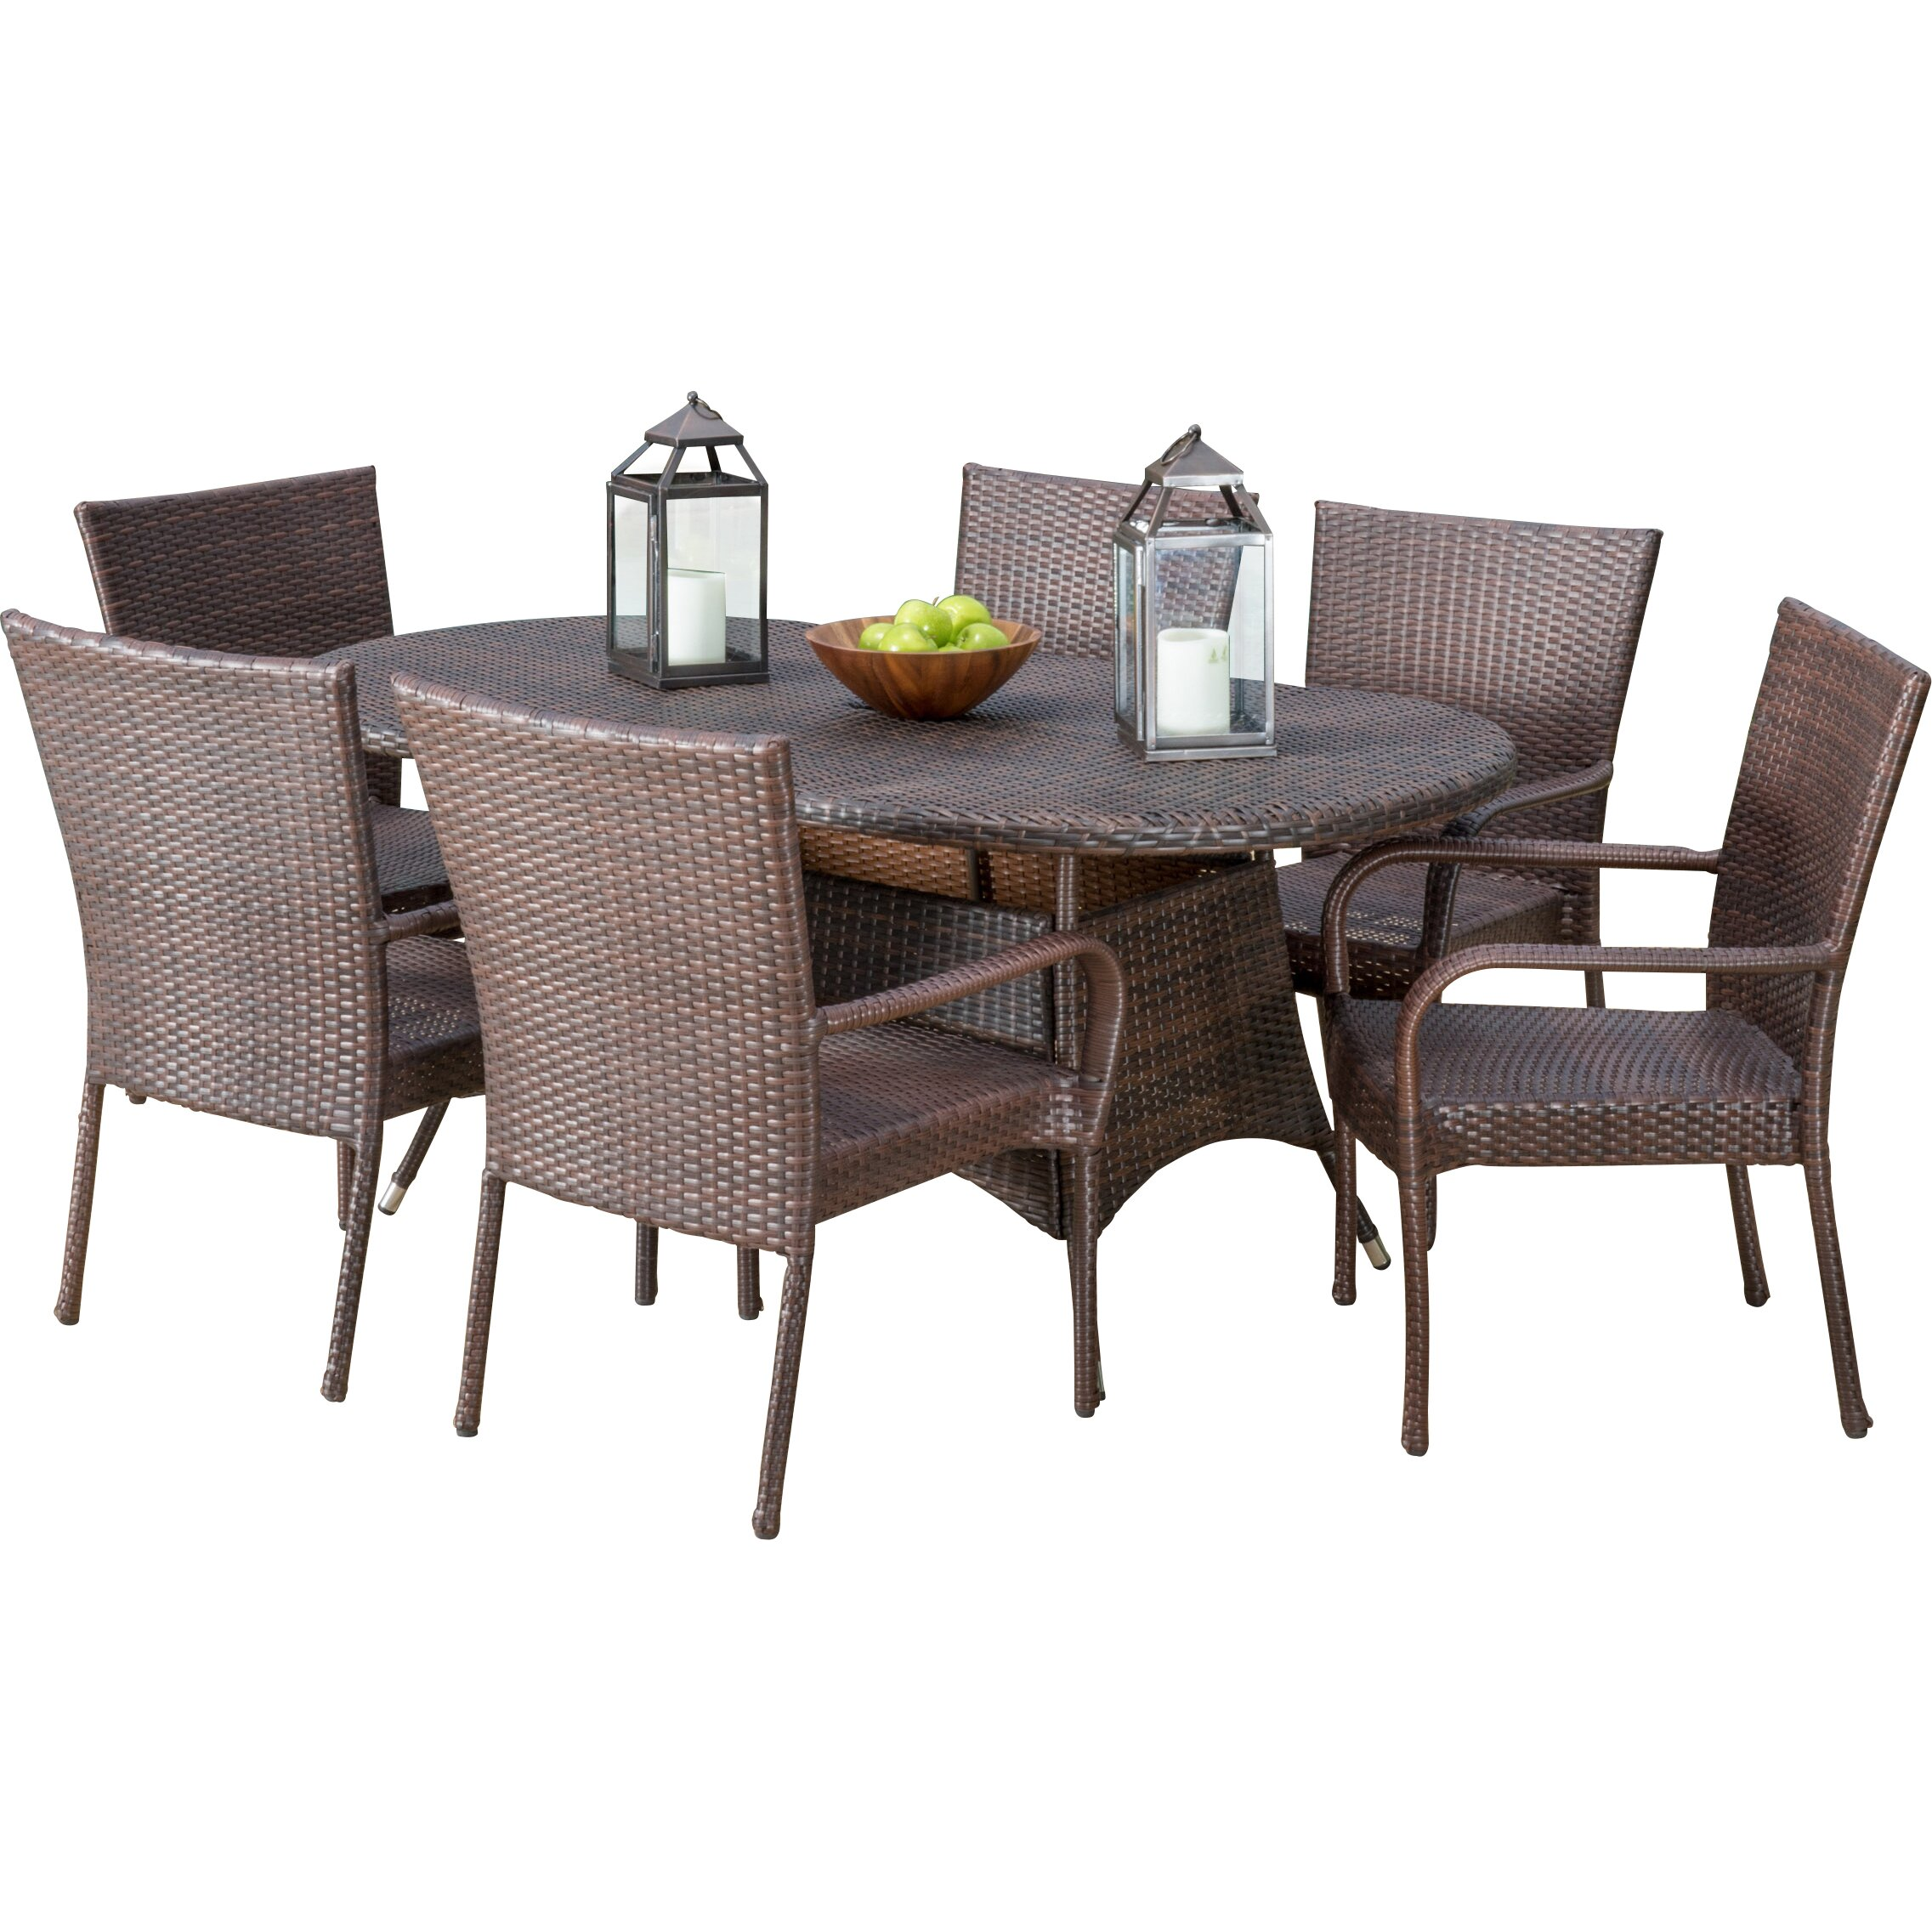 Very Impressive portraiture of Outdoor Patio Furniture Six Person Patio Dining Sets Home Loft  with #858645 color and 2273x2273 pixels